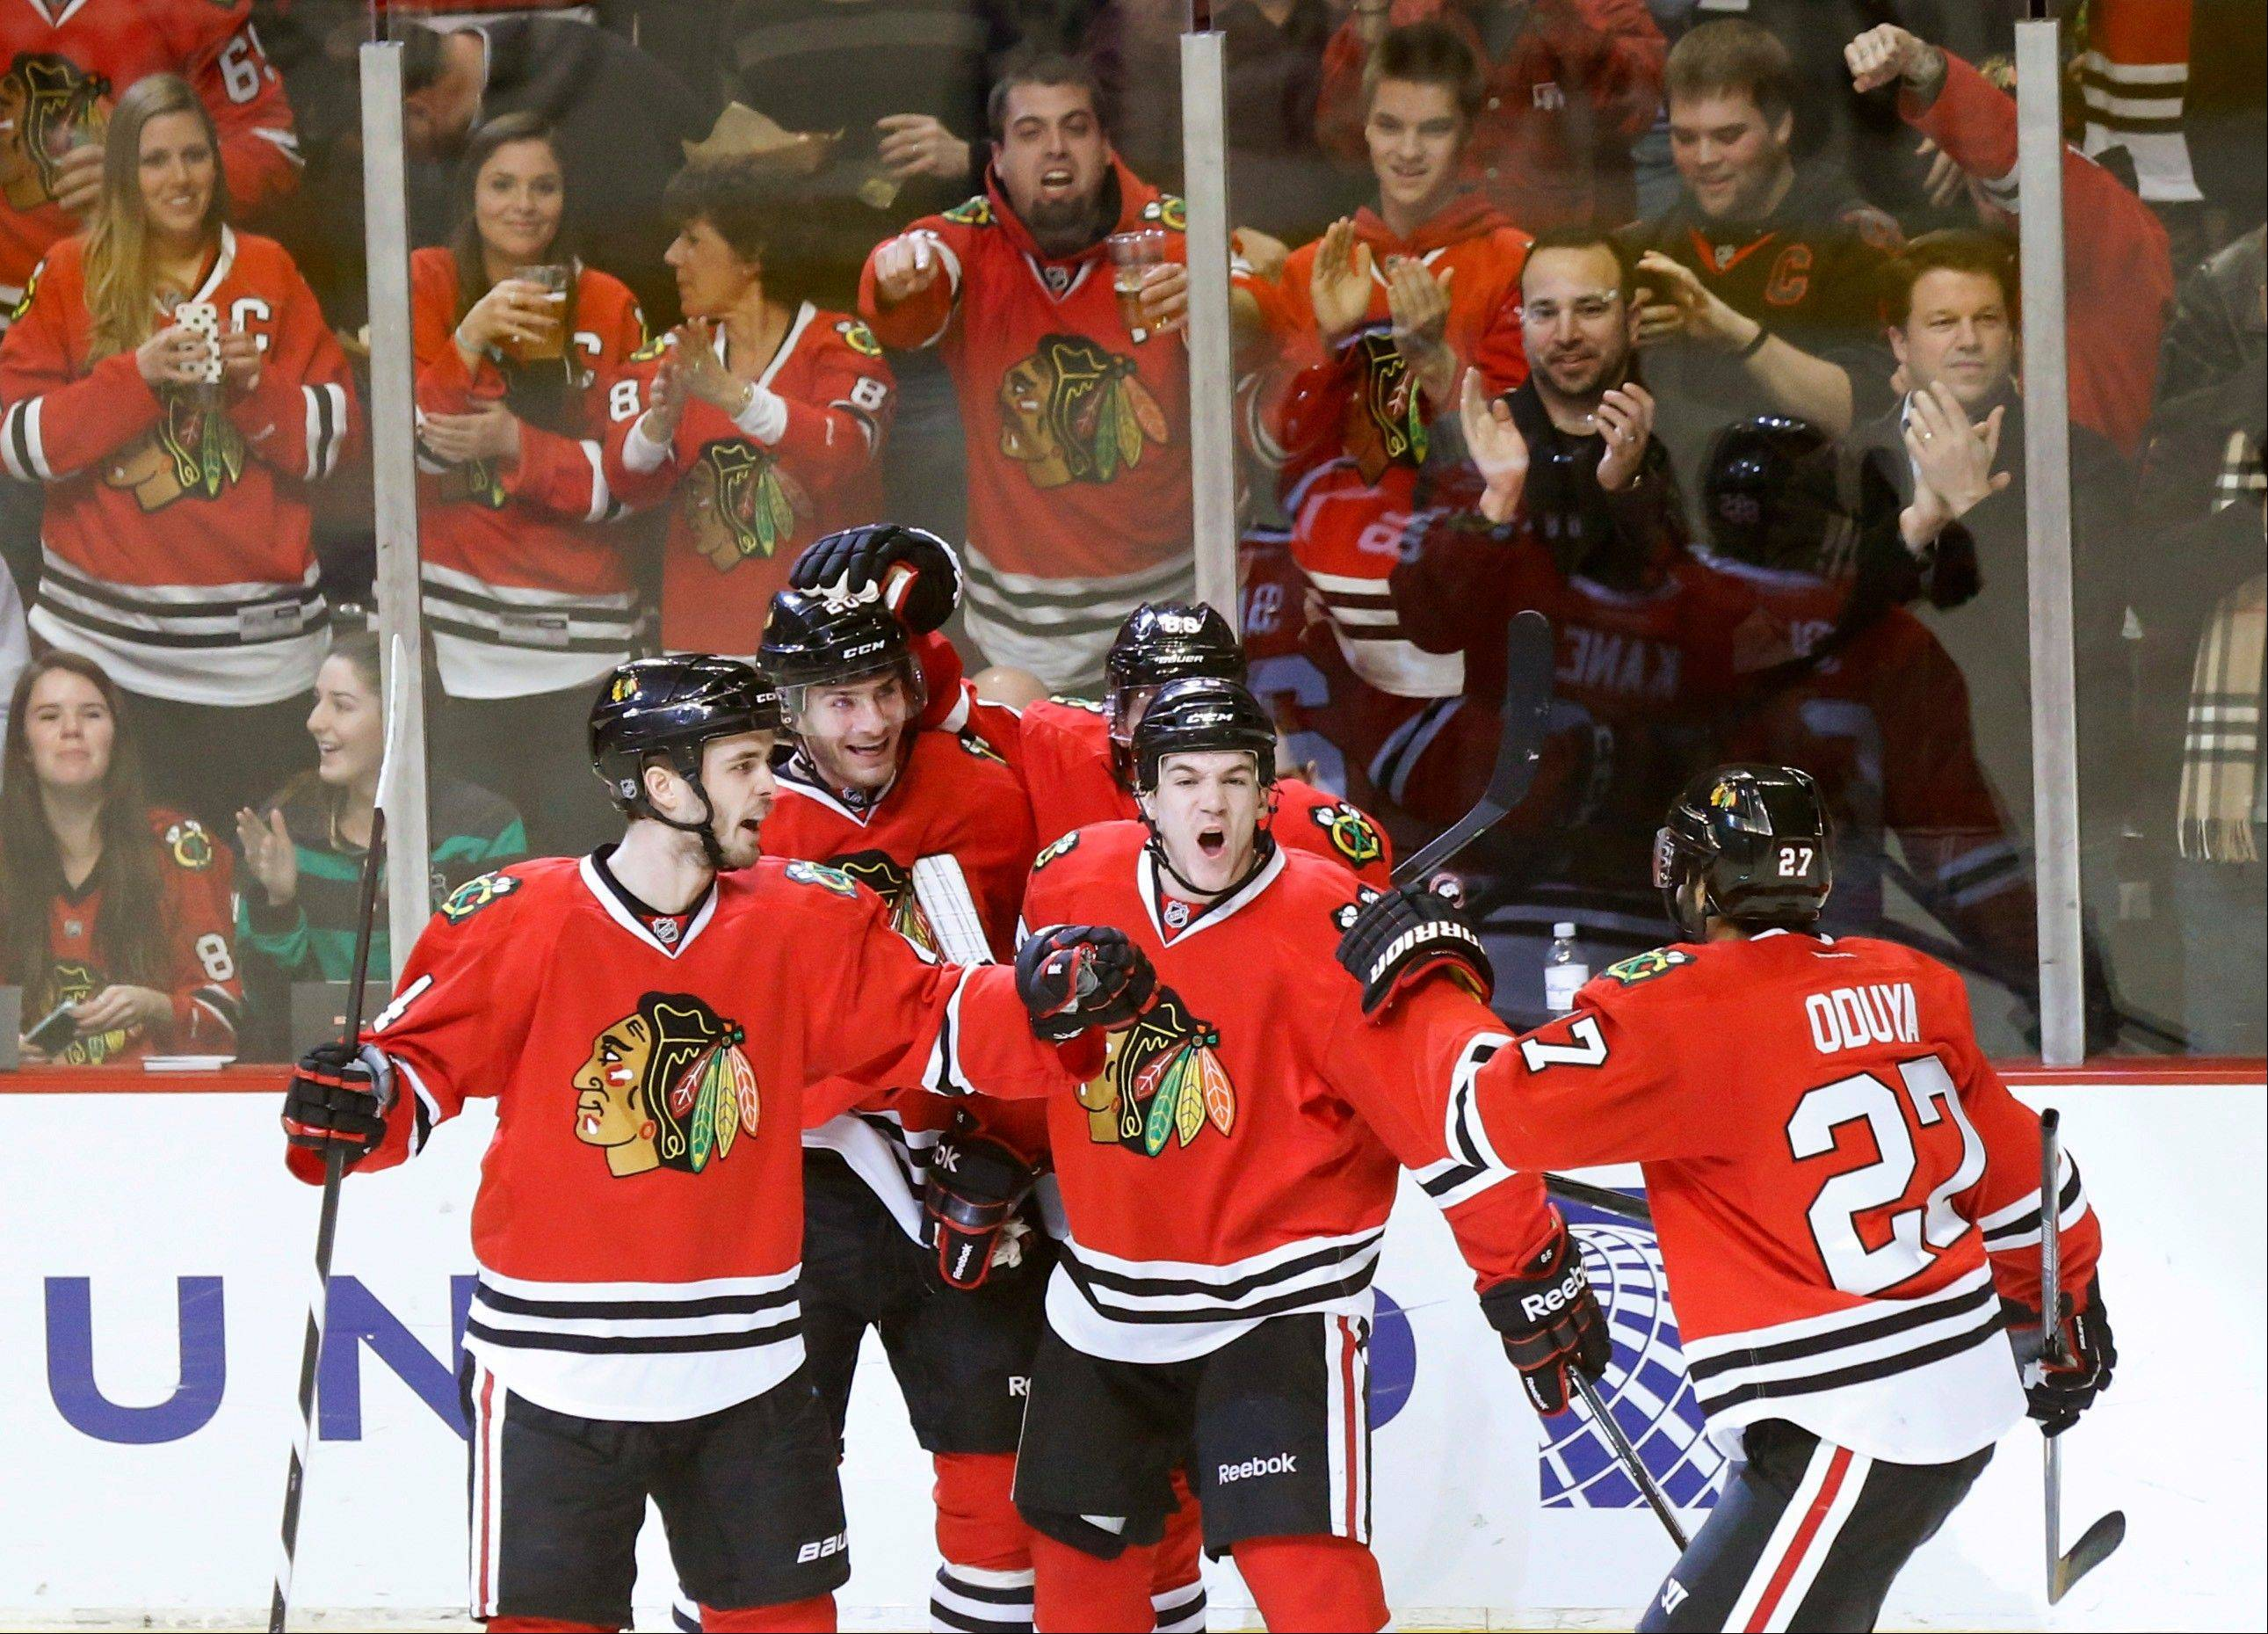 The Blackhawks' Johnny Oduya celebrates his goal with teammates from left, Niklas Hjalmarsson (4) Brandon Saad, Andrew Shaw and Patrick Kane (behind Shaw), during the second period Tuesday against the Avalanche at the United Center.